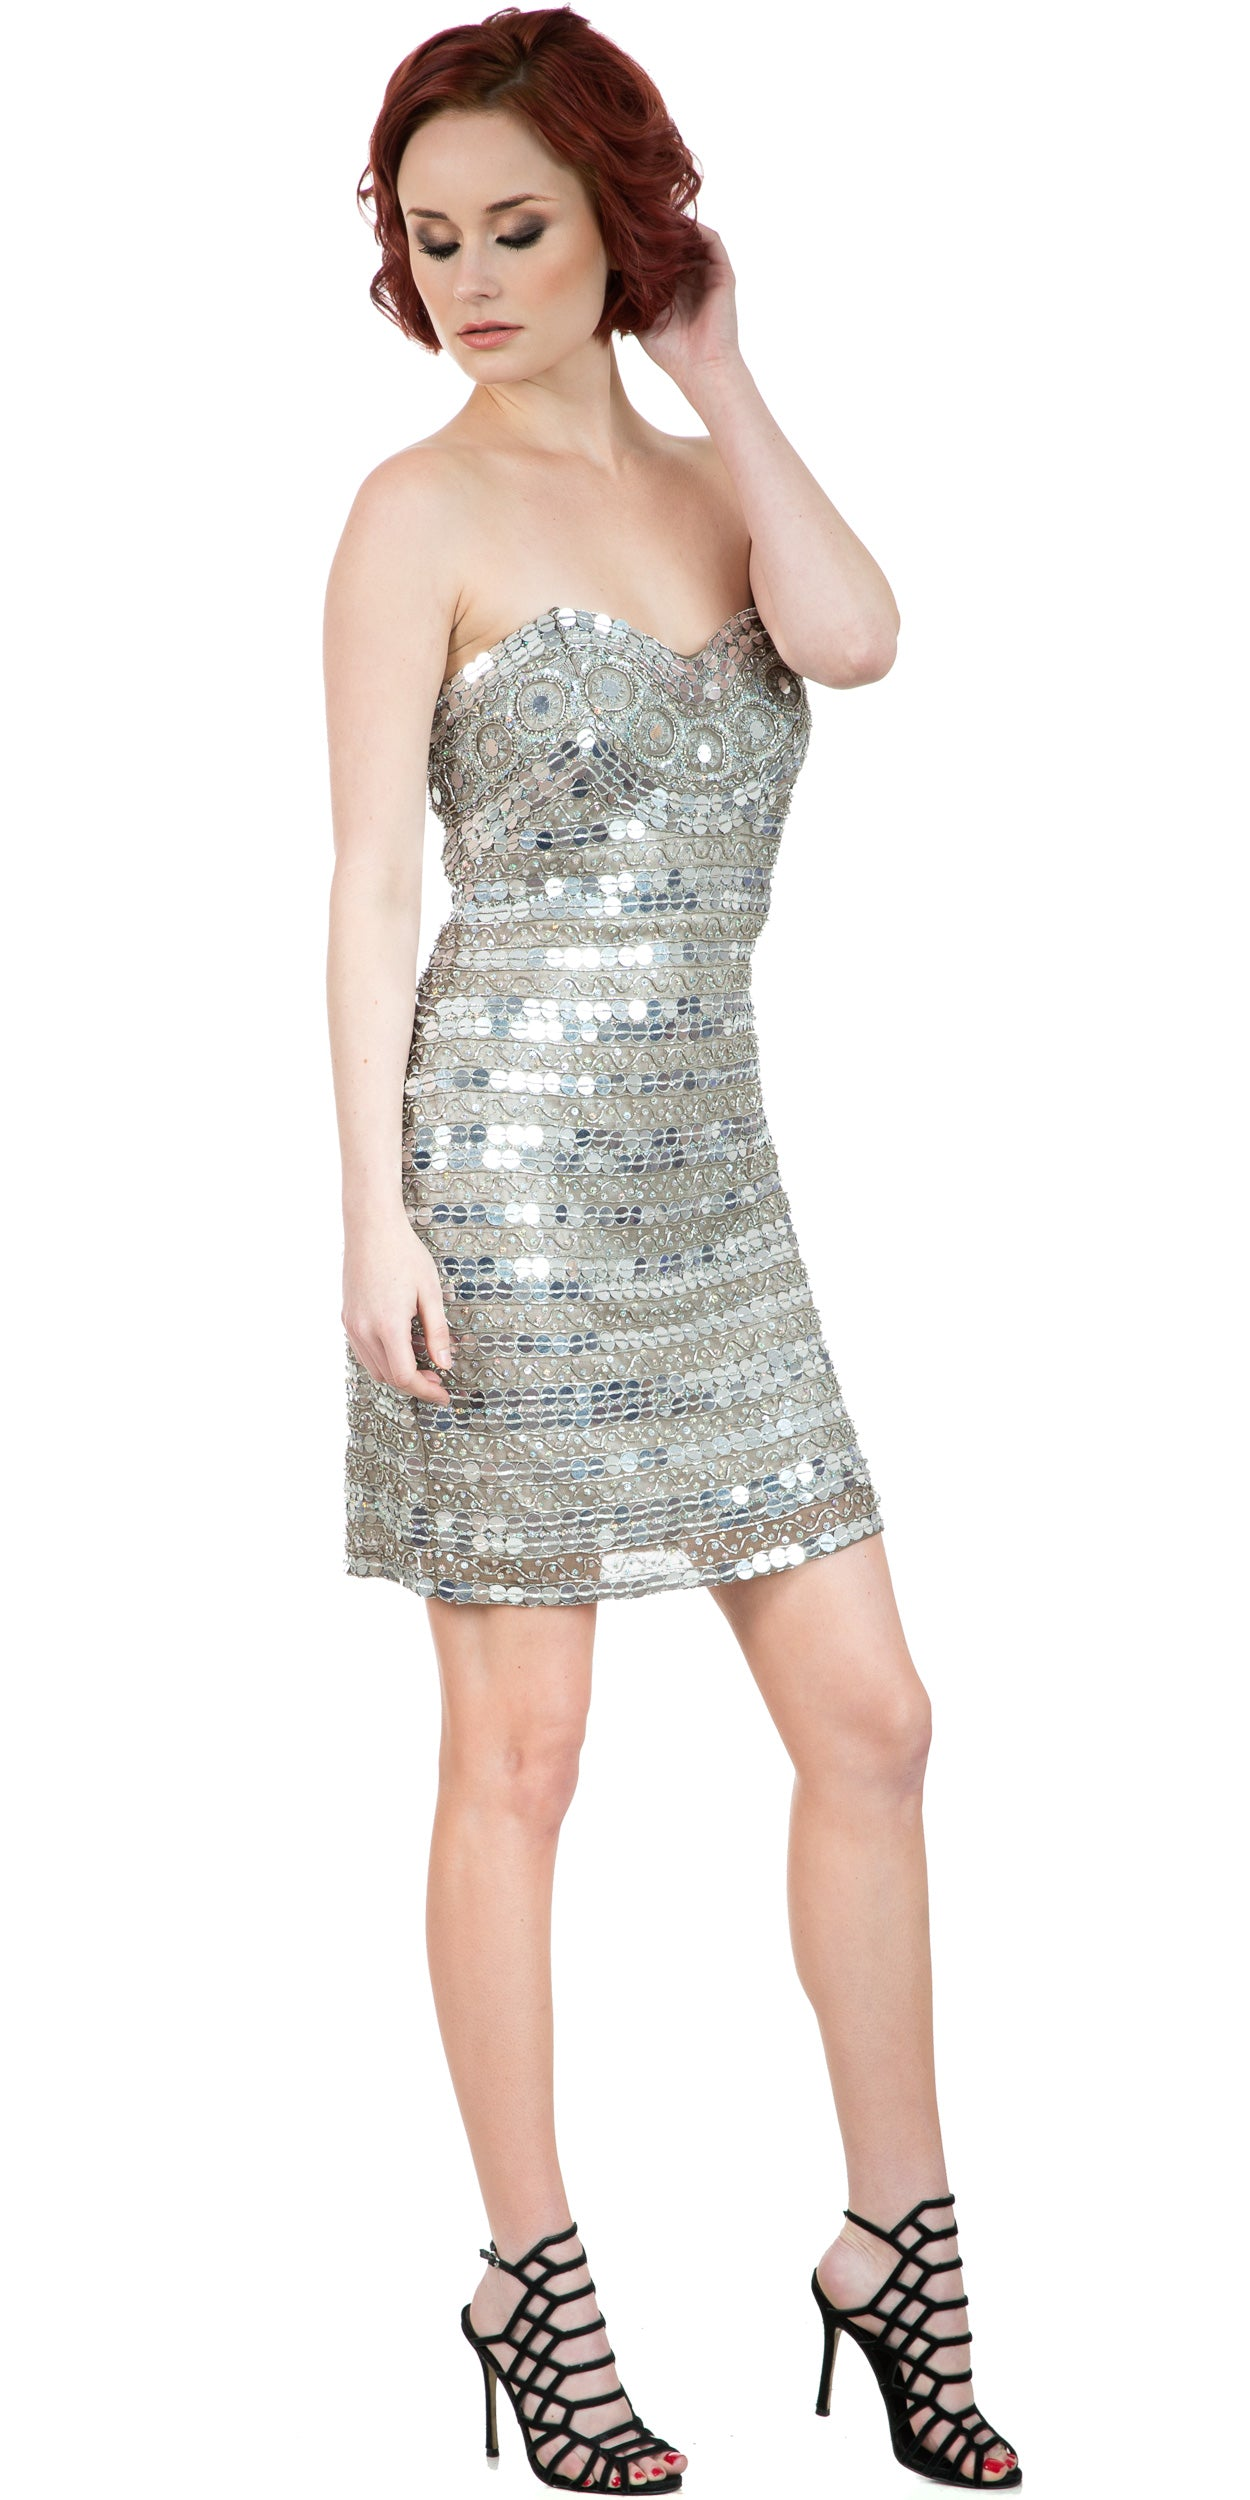 Image of Strapless Mirror Sequins & Beads Short Prom Party Dress in an alternative image